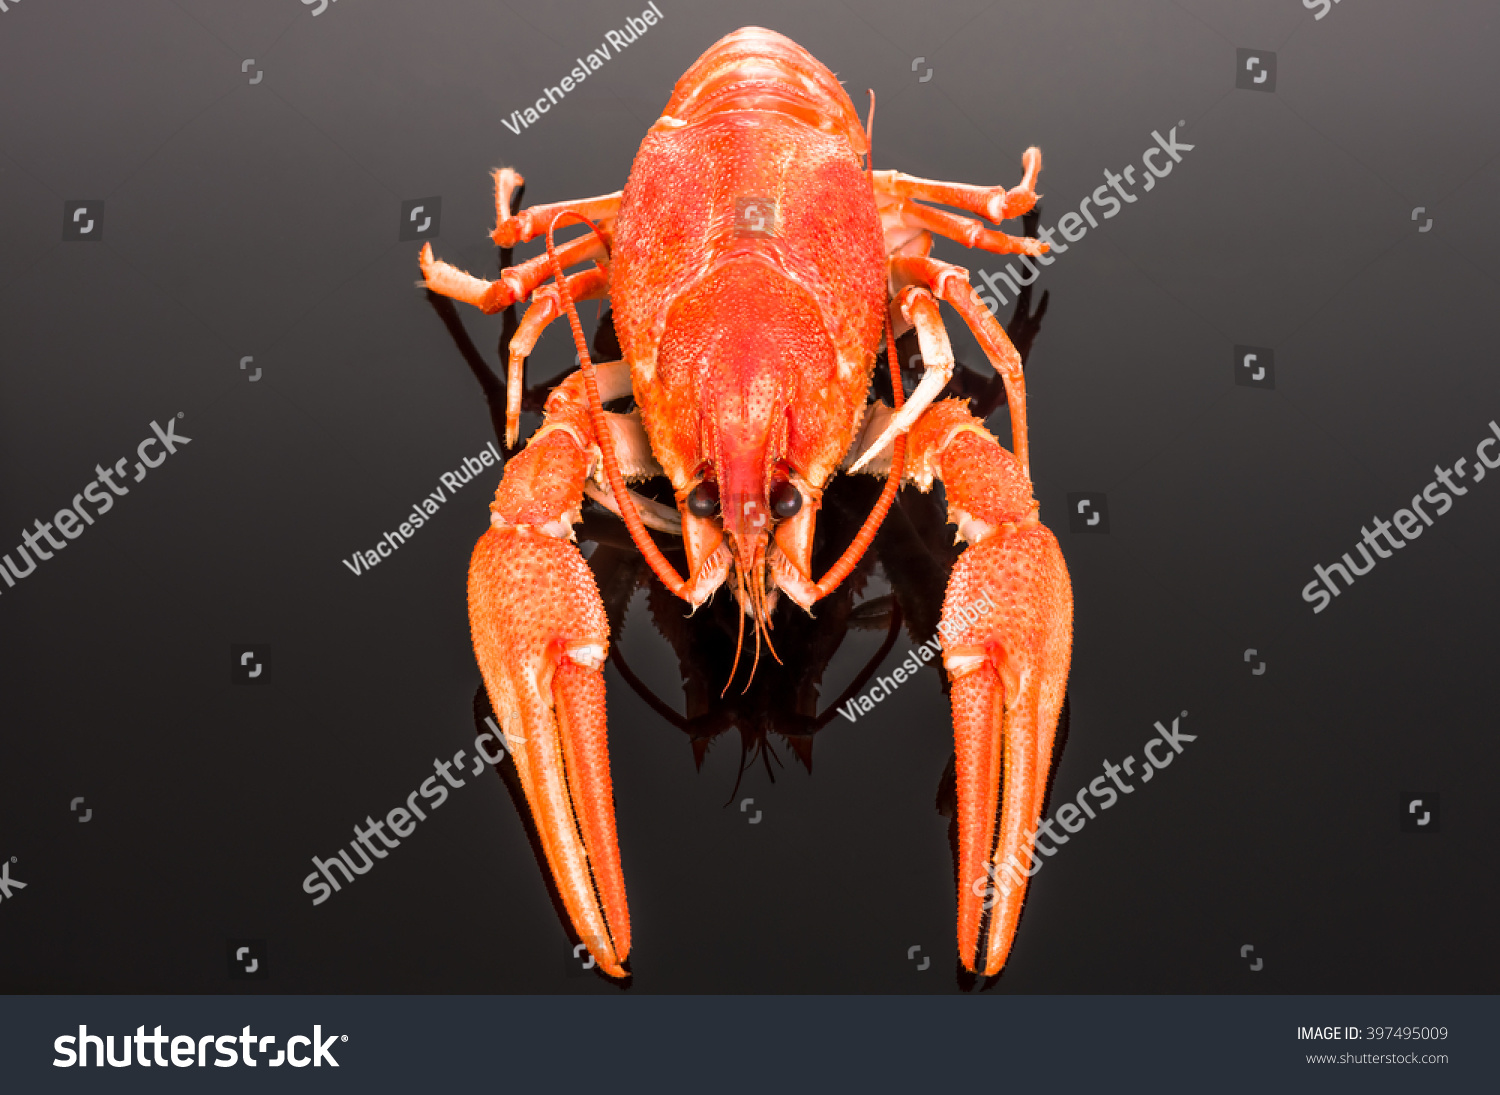 Boiled Crawfish On Mirror Dark Background Stock Photo (Royalty Free ...